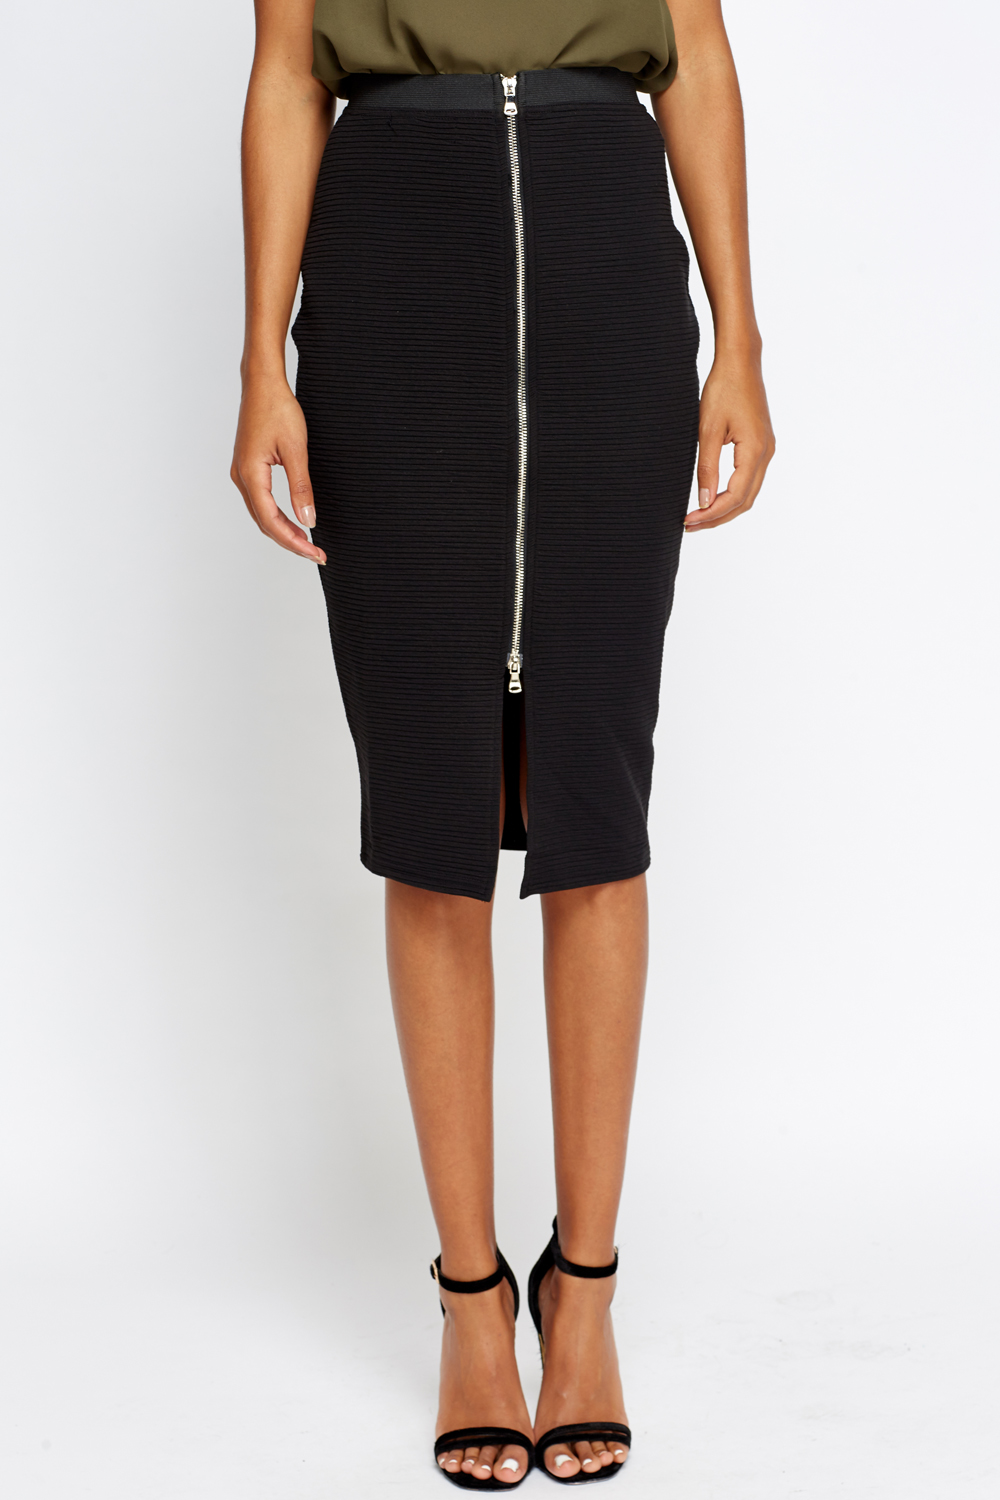 8d37b0a9ce Ribbed Zip Front Midi Skirt - Just £5